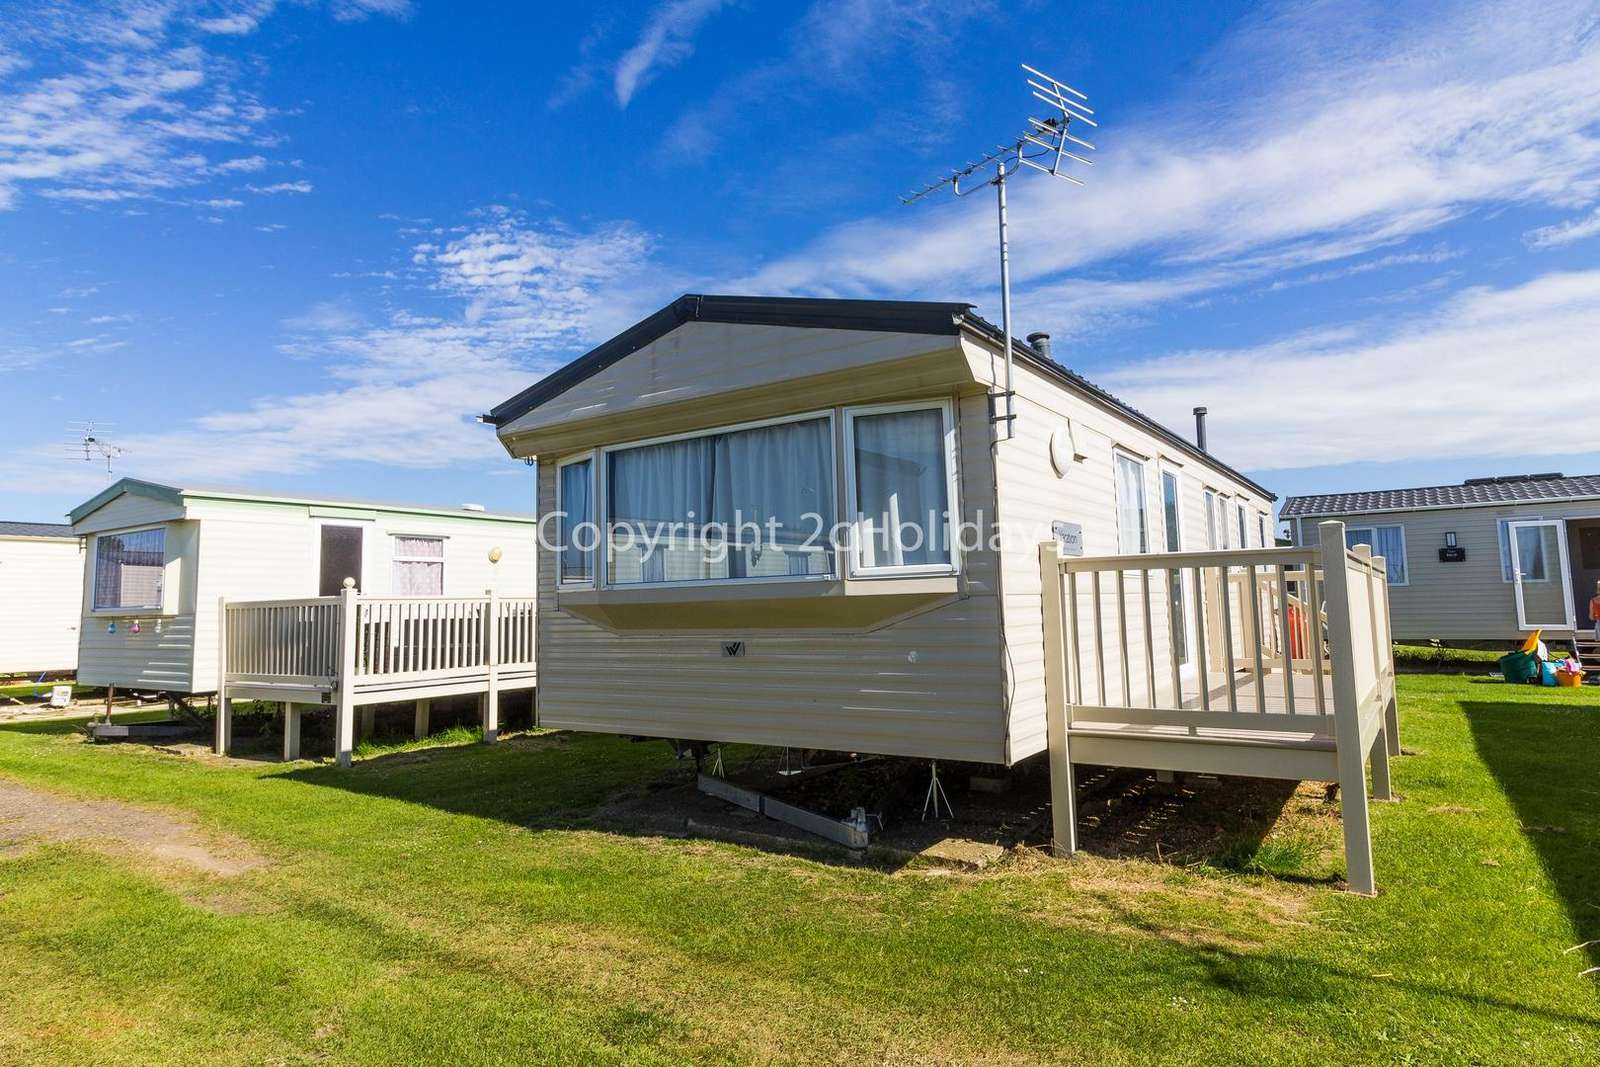 So many families have enjoyed a great break at Heacham holiday park